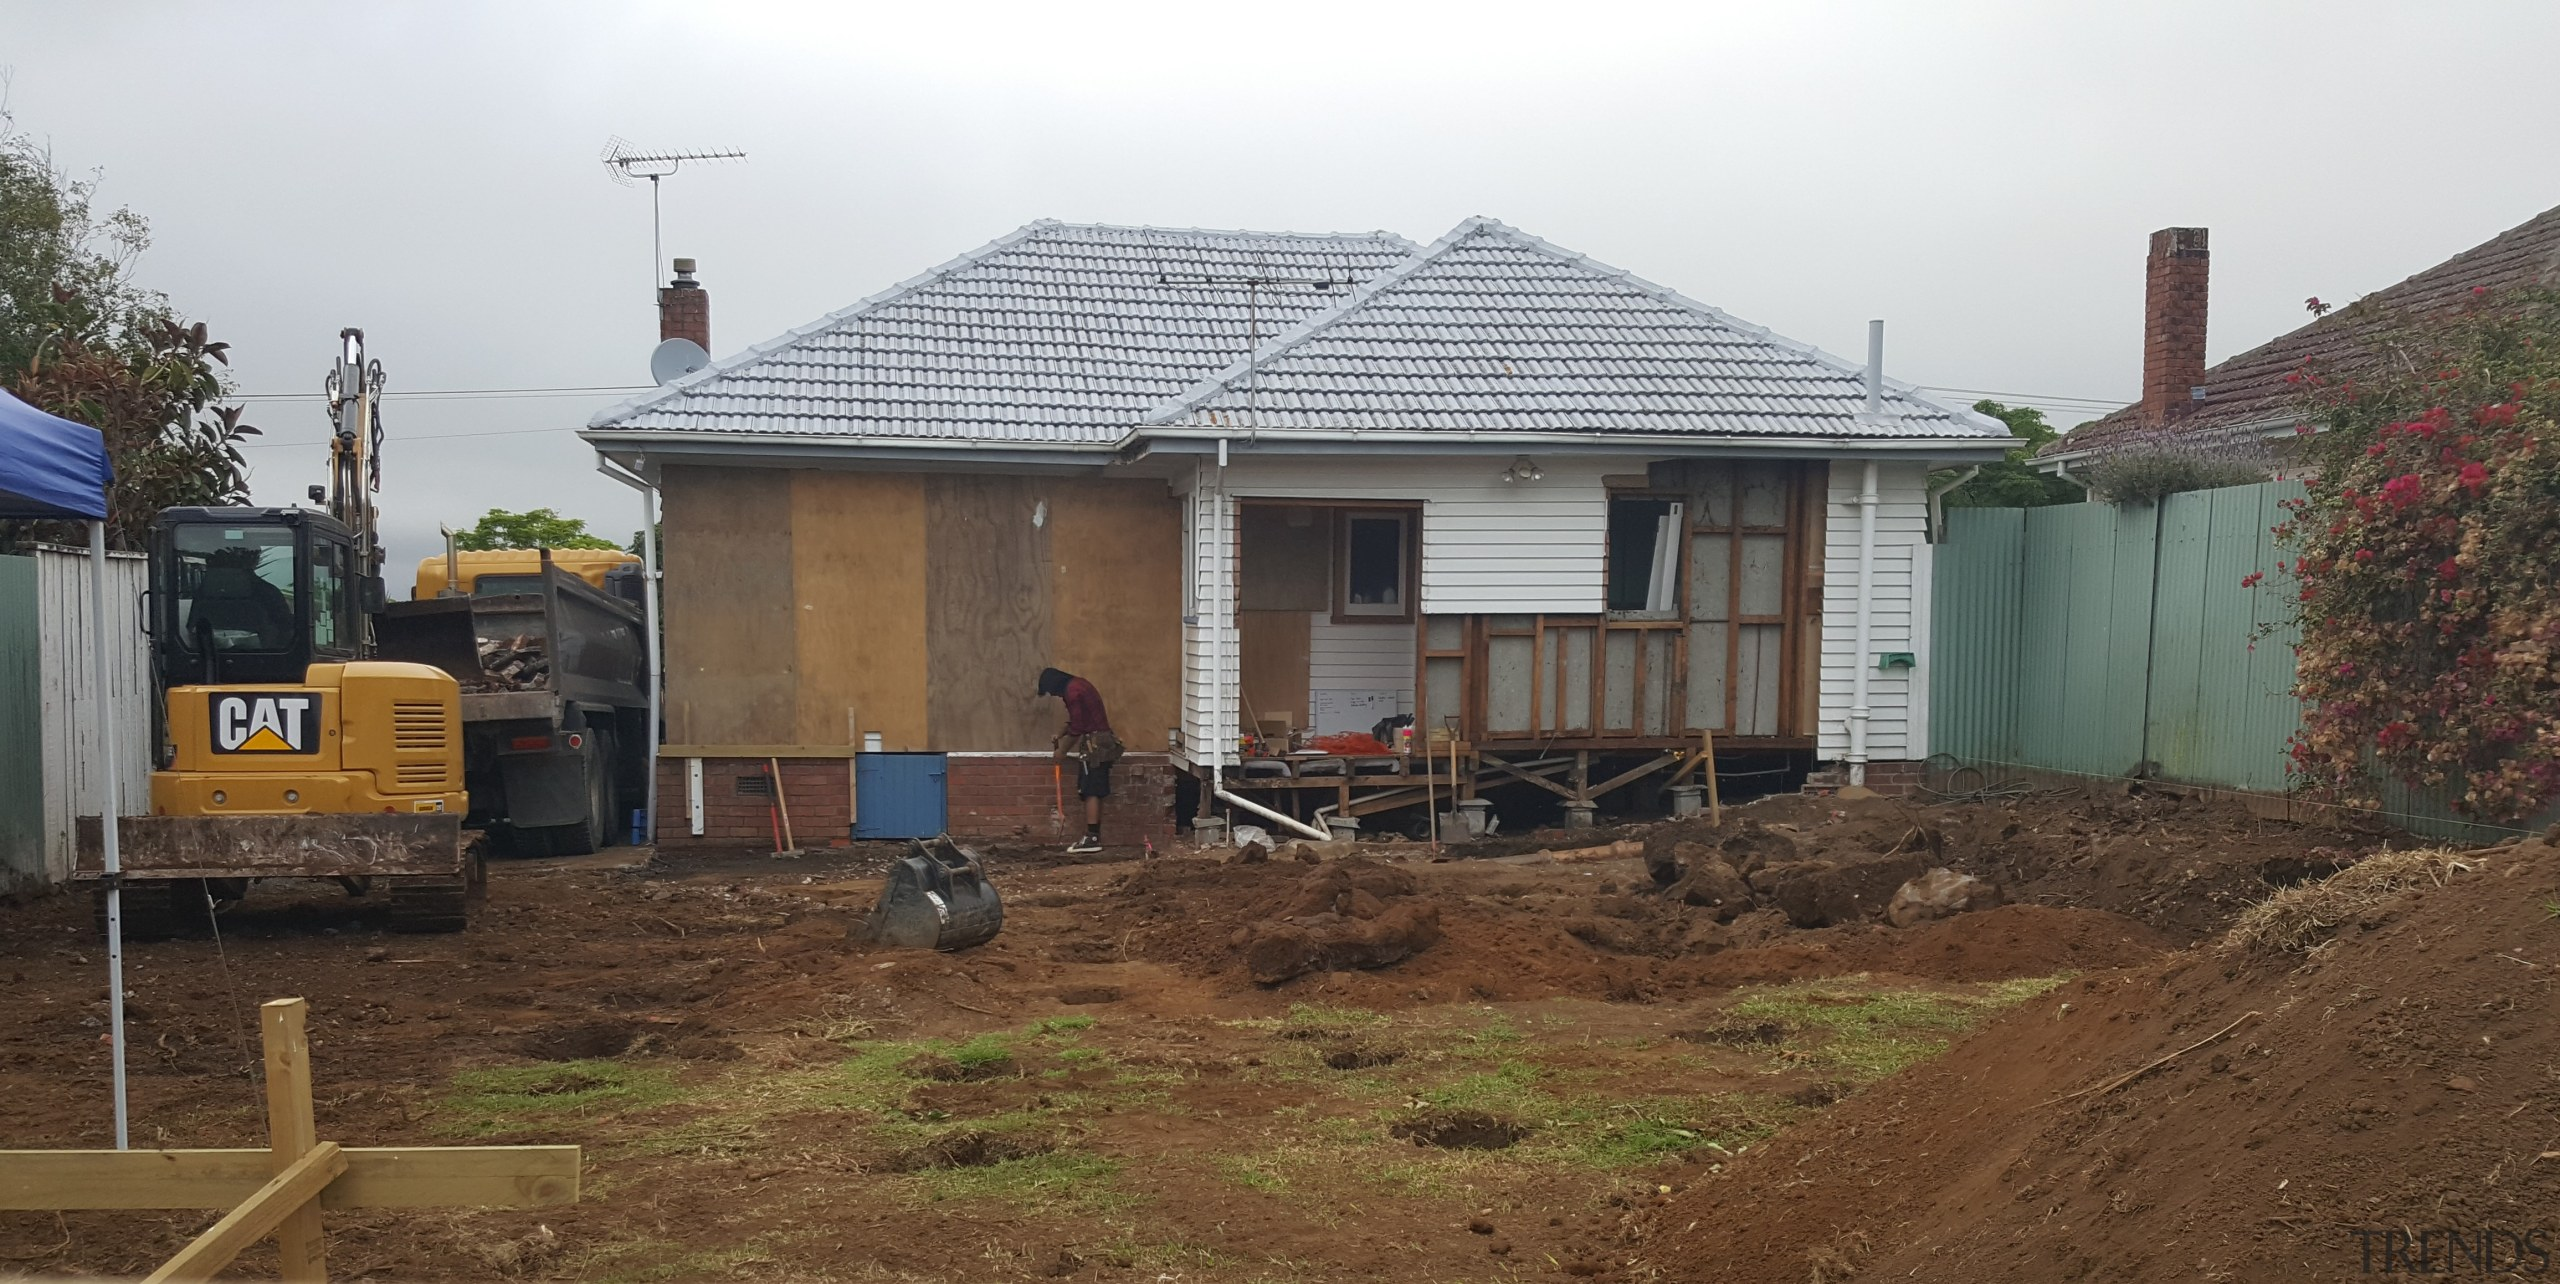 Is your renovation budget realistic? - building | building, cottage, home, house, land lot, neighbourhood, property, real estate, residential area, roof, rural area, shack, soil, brown, white